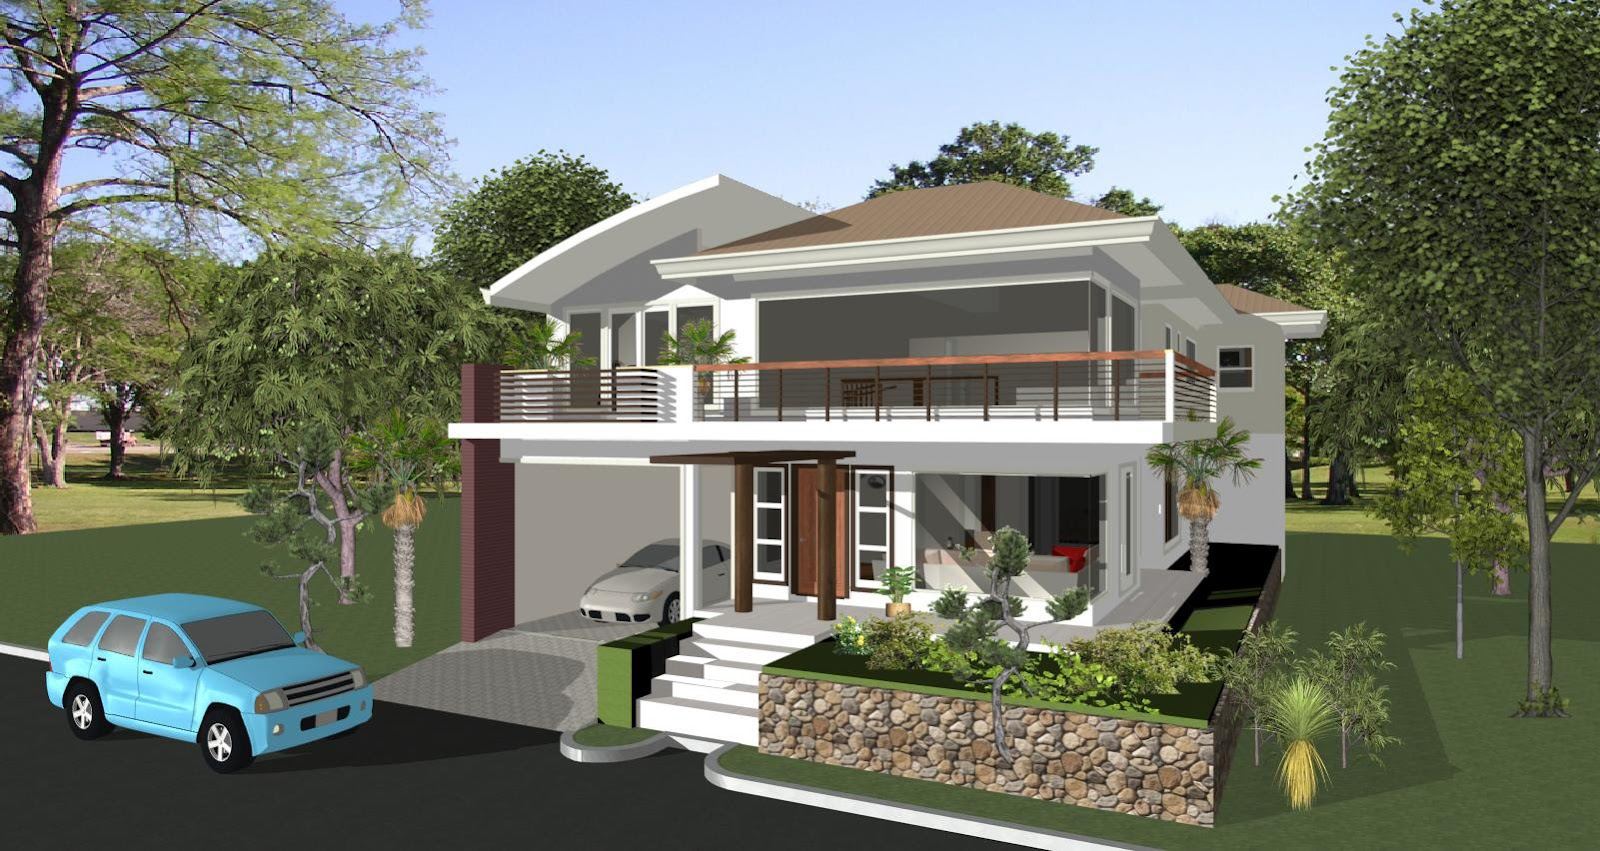 house designs philippines architect bill house plans. Black Bedroom Furniture Sets. Home Design Ideas